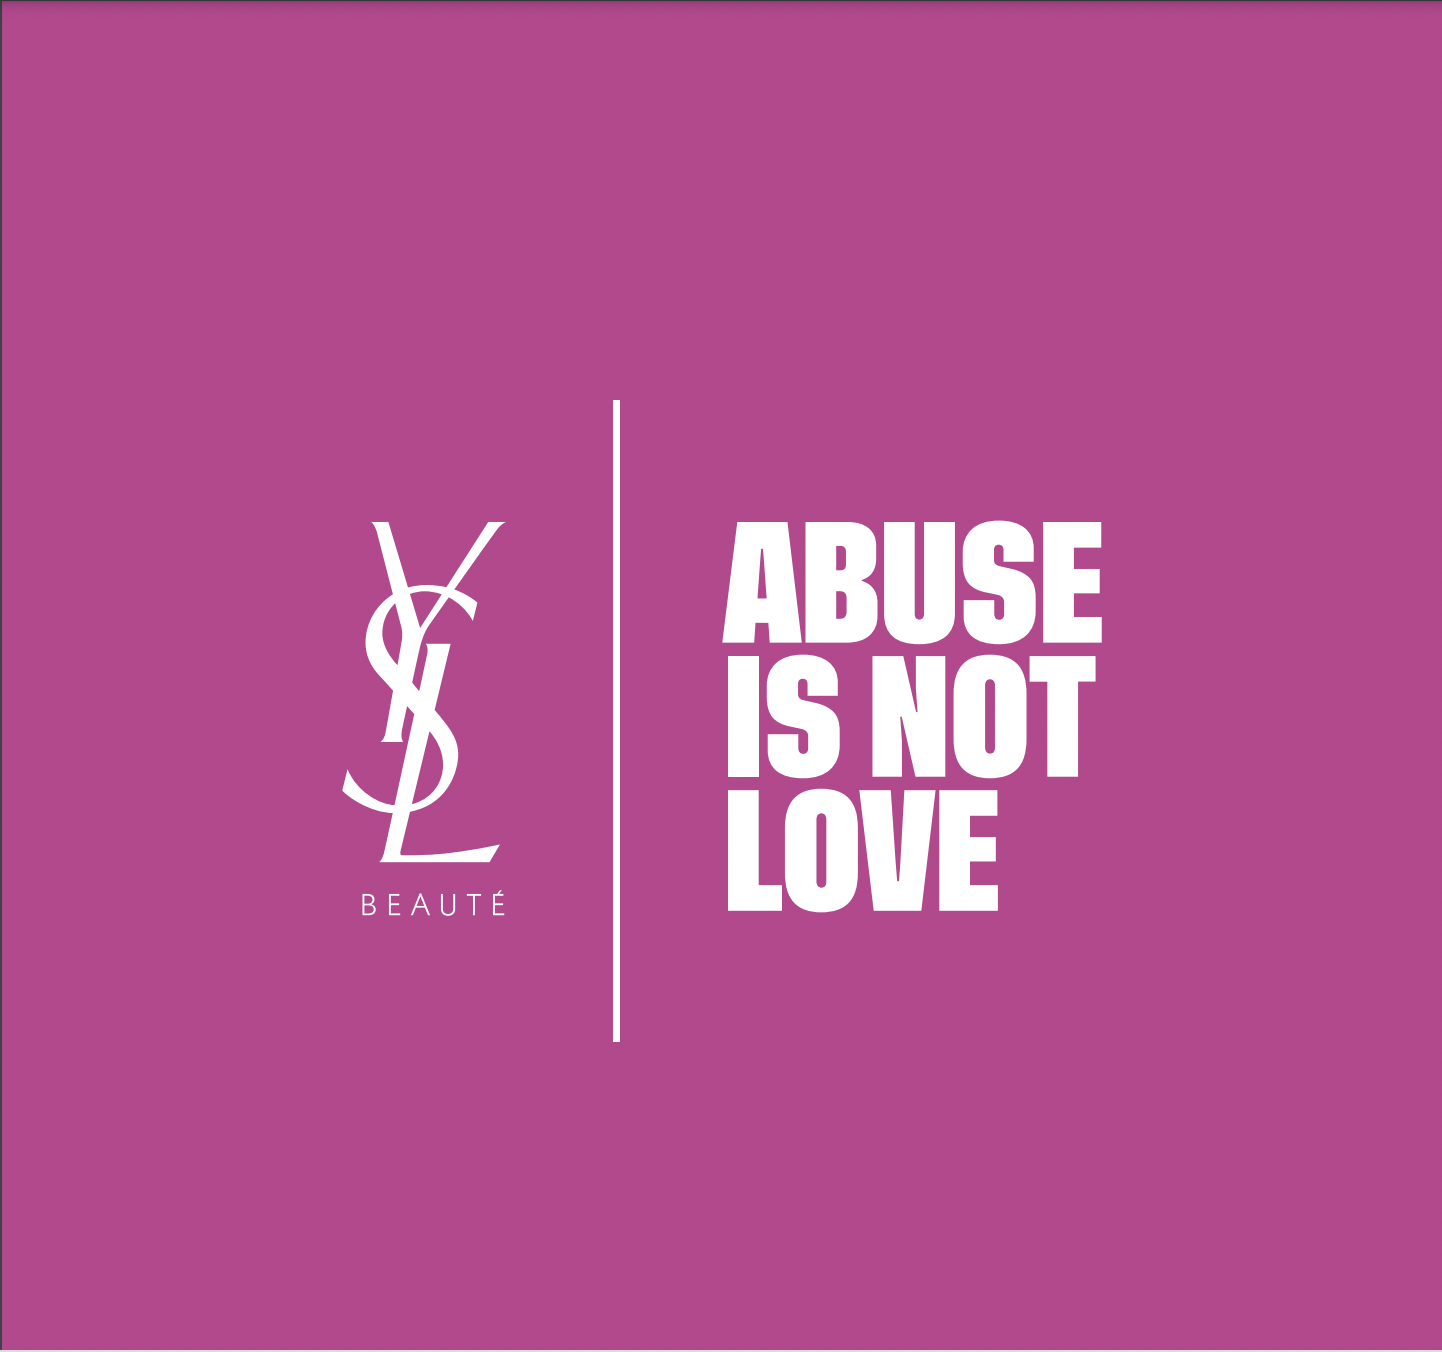 YSL Abuse is not Love